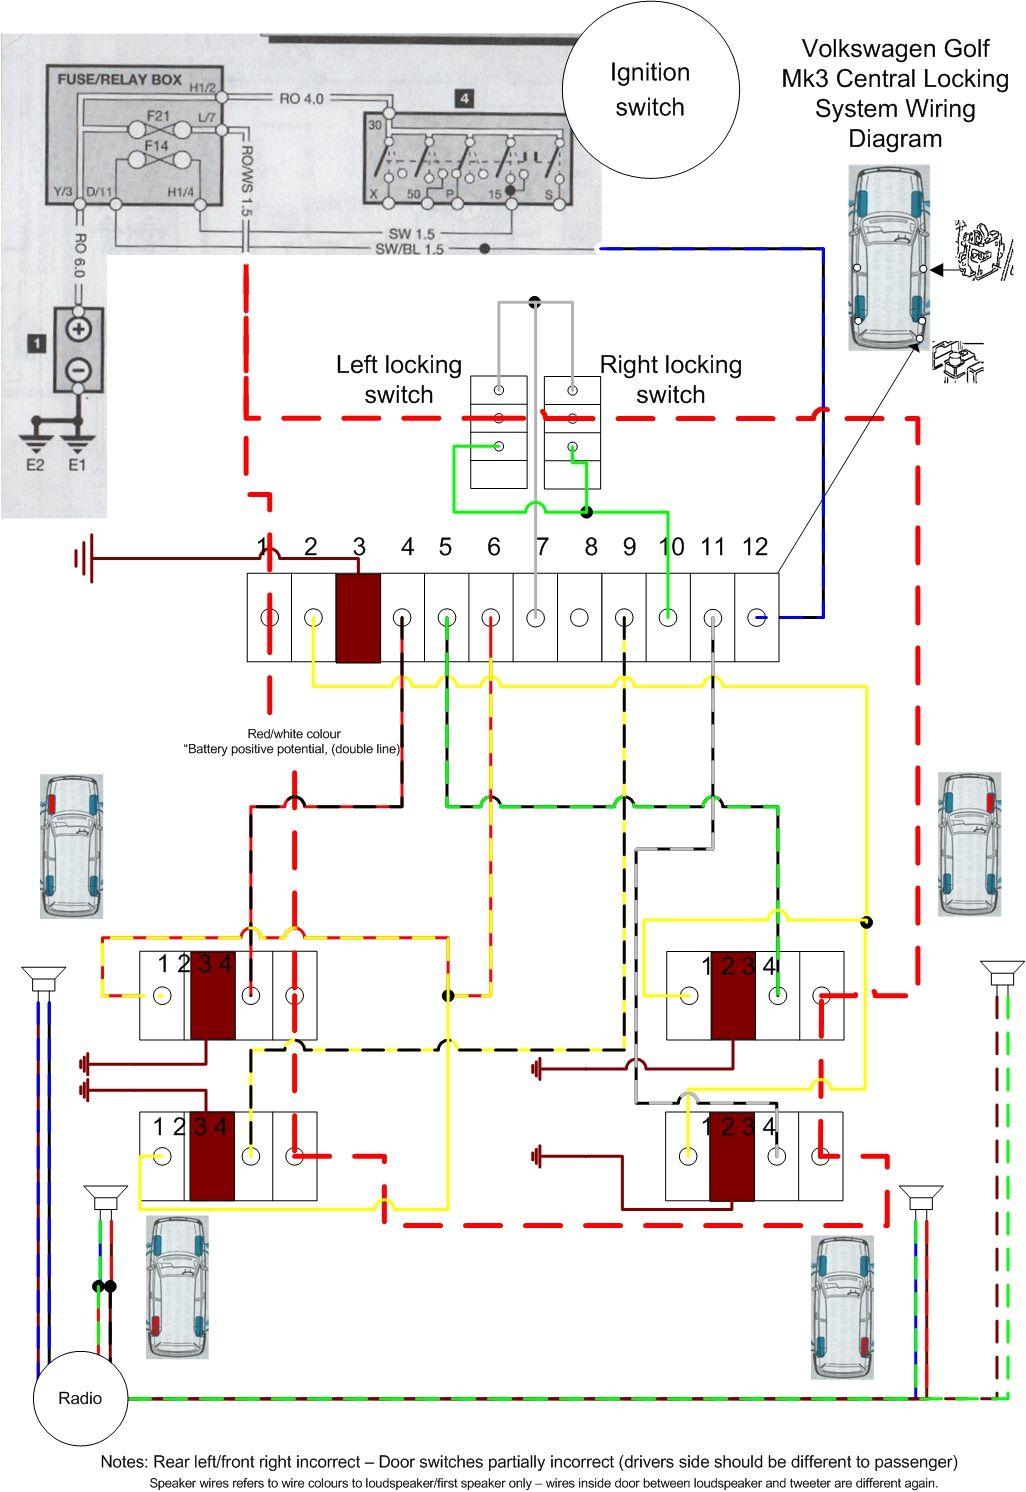 hight resolution of vw ignition switch wiring diagram another wiring diagramvw ignition switch wiring diagram accessory for bikes vw